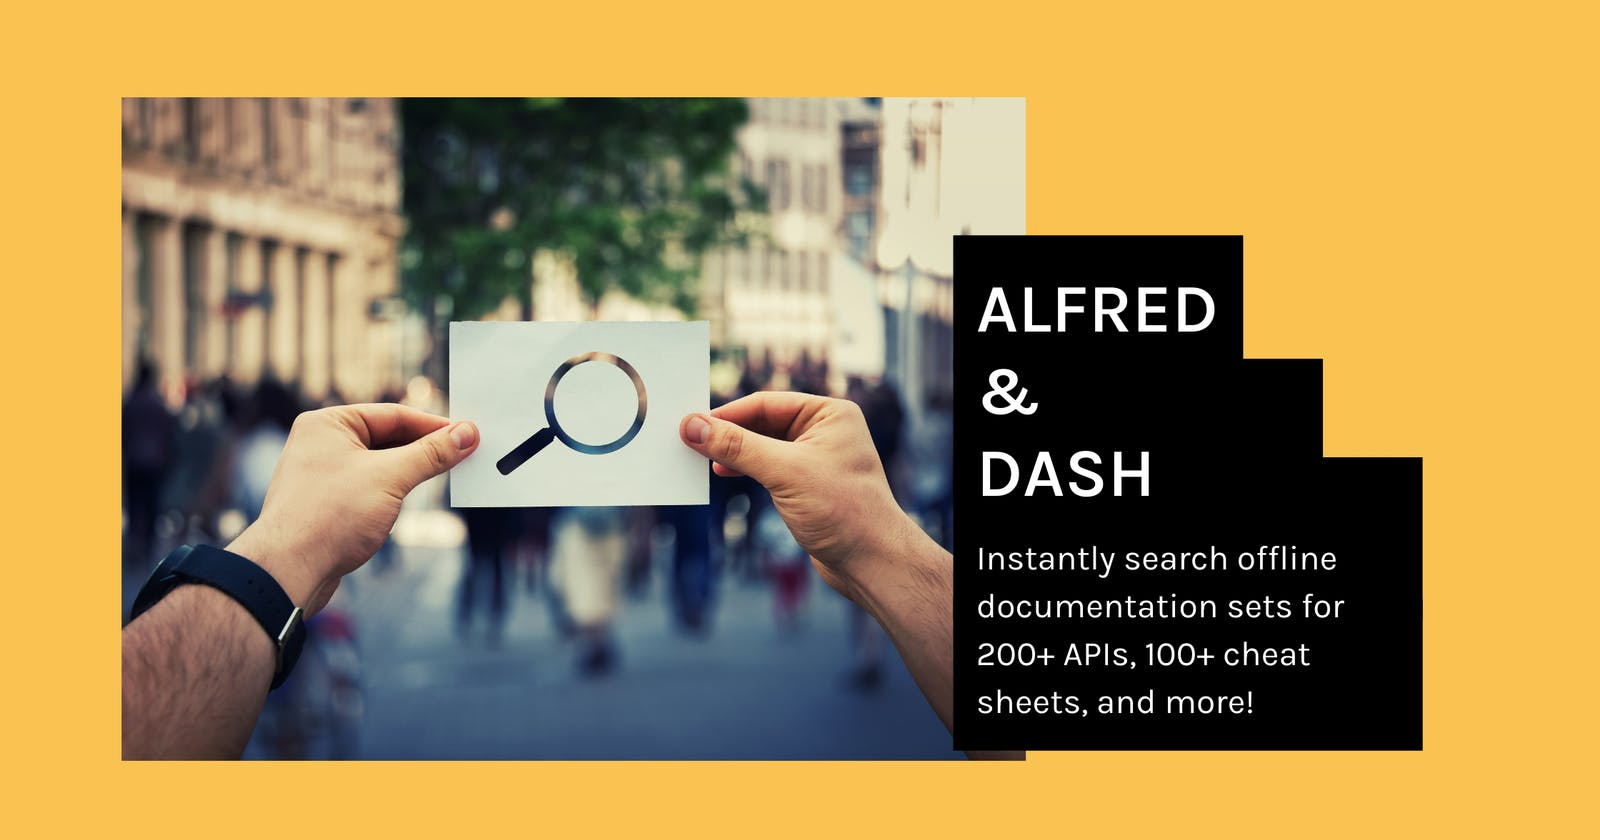 Dash + Alfred - instantly search offline documentation sets for 200+ APIs, 100+ cheat sheets, and more!